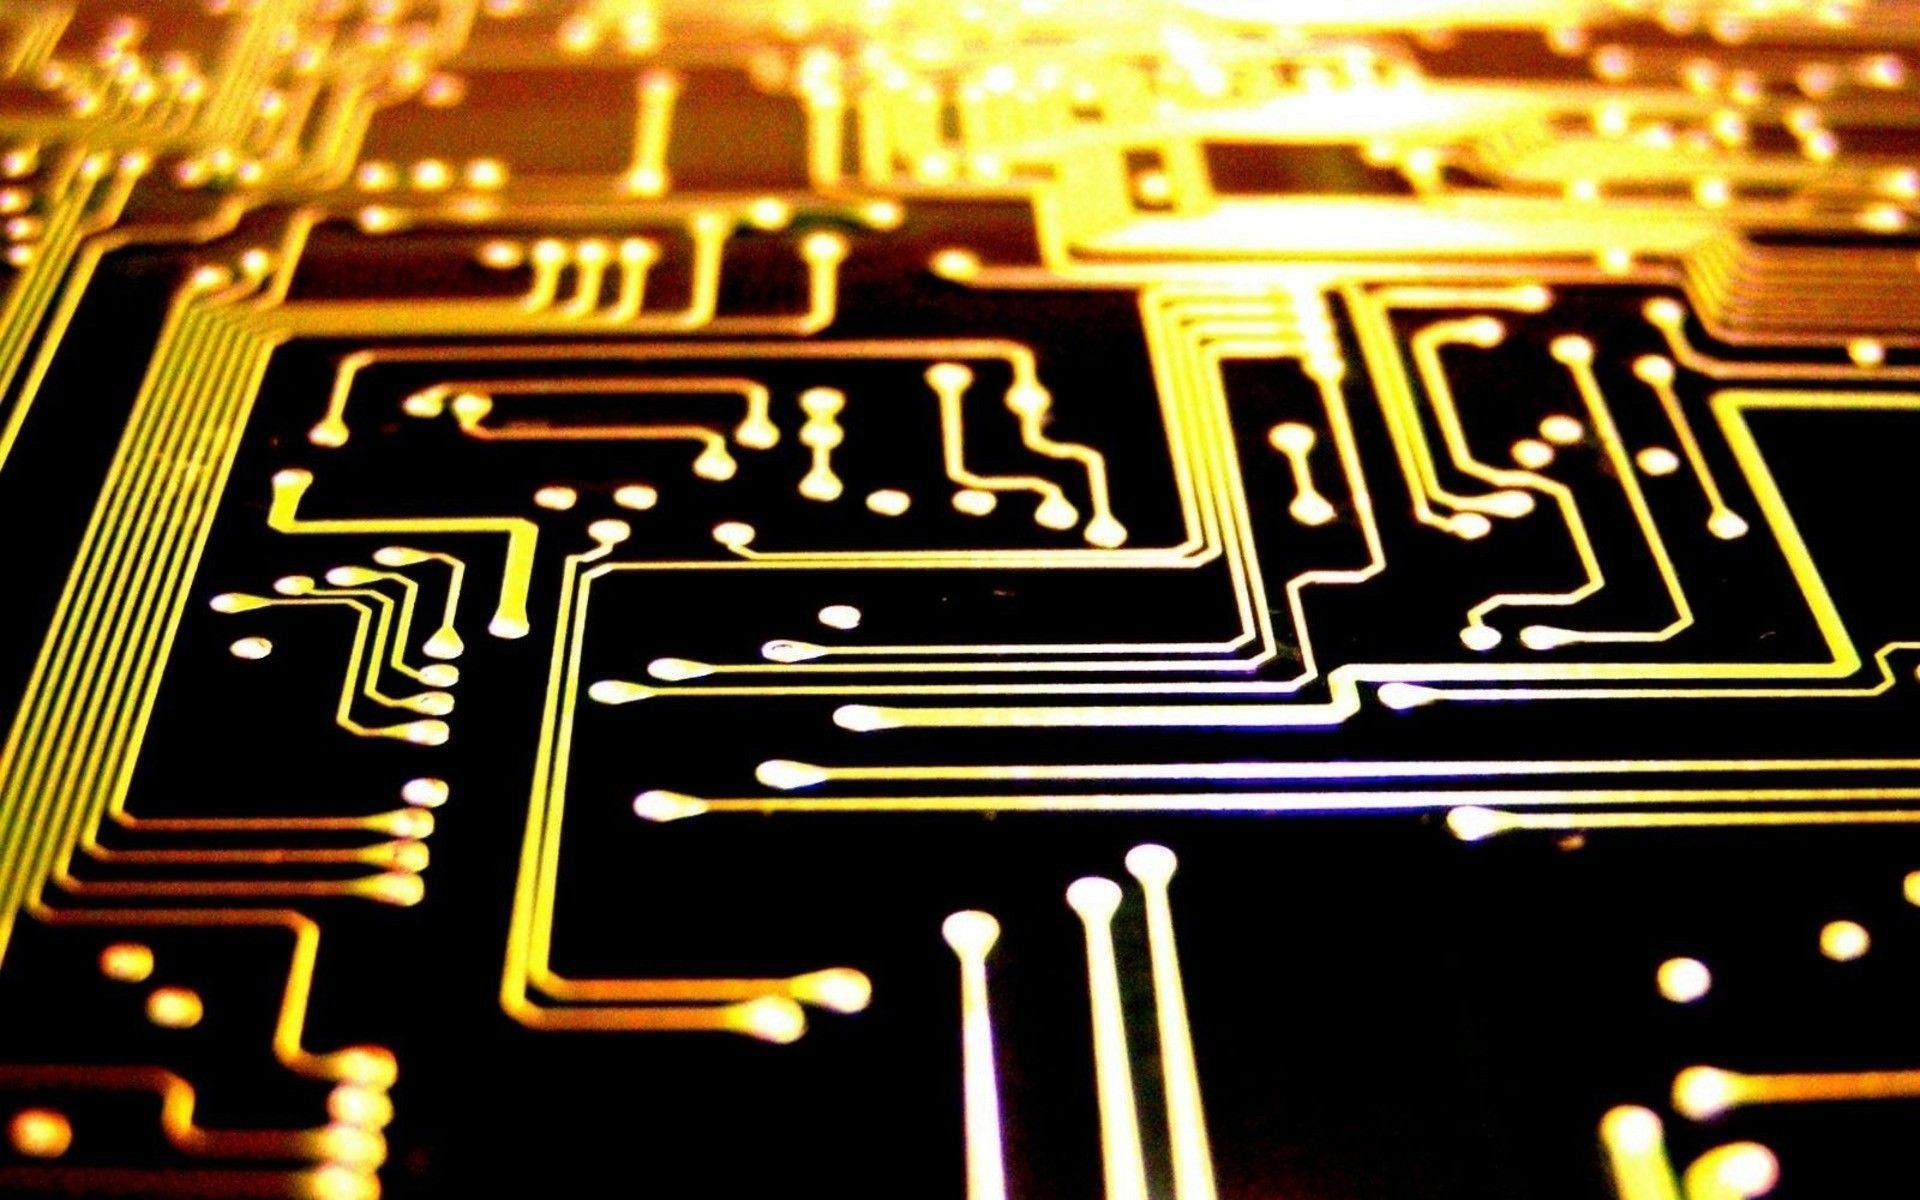 Download Circuit PCb Wallpapers 1920x1200